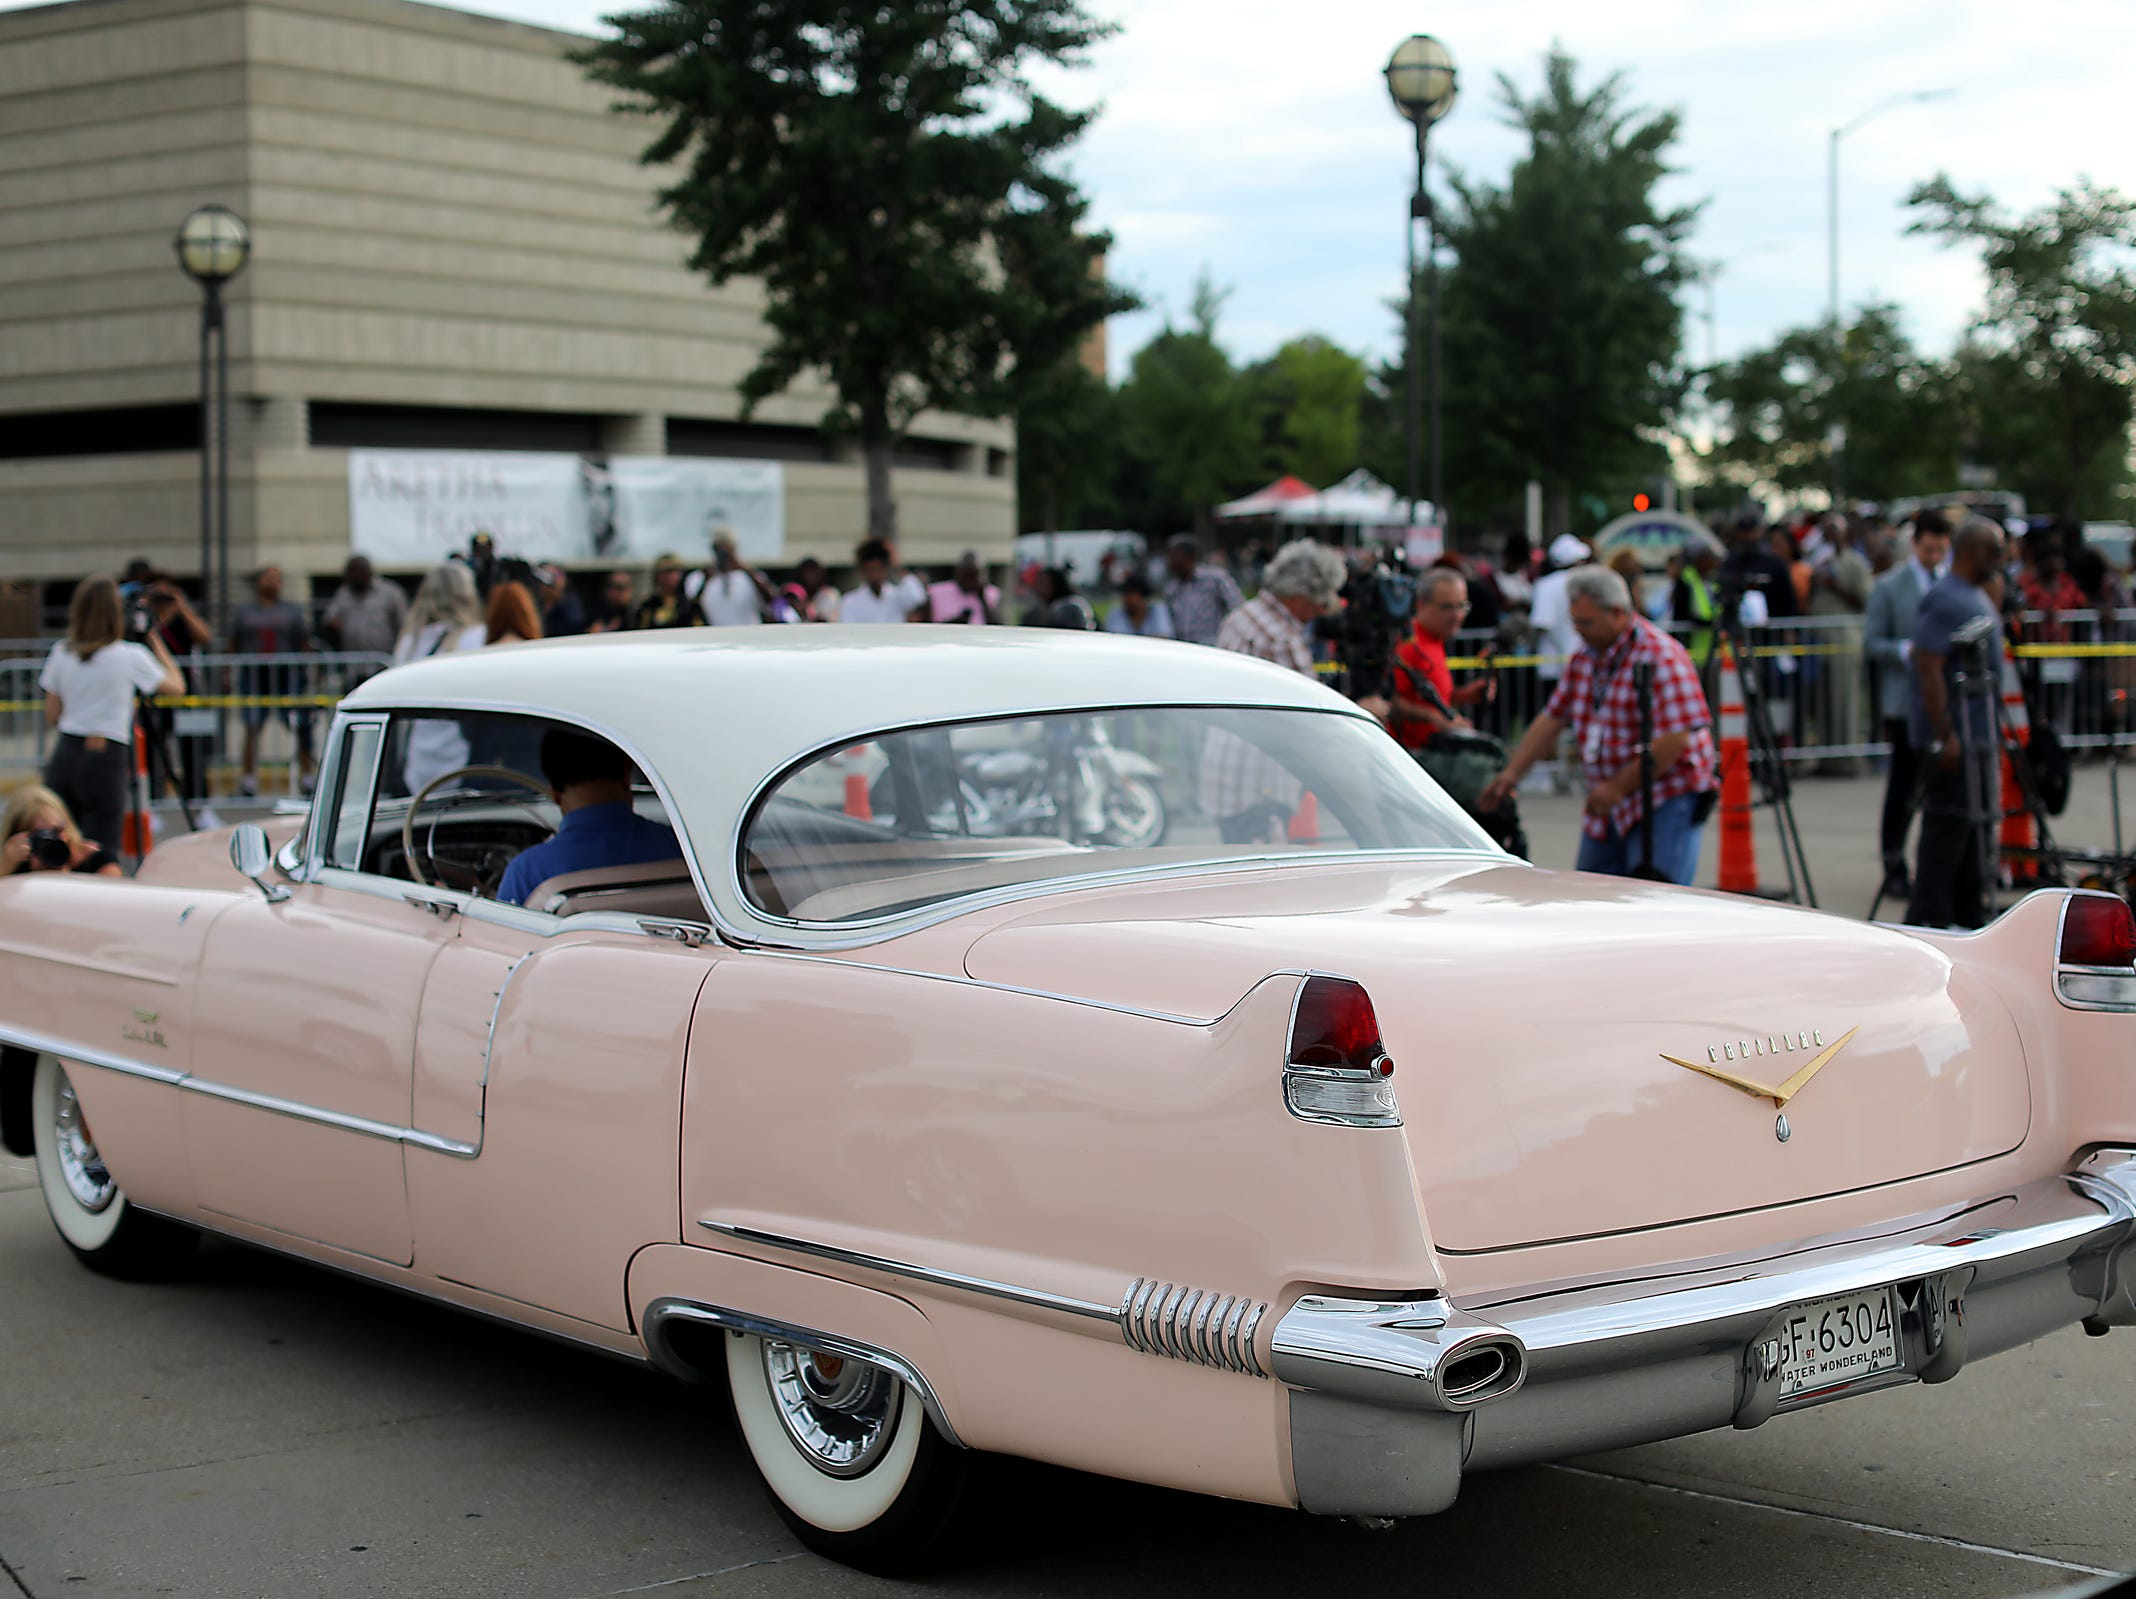 Stuart Popp's 1956 Cadillac Sedan deVille pulls in to the circle drive on the second day of a public viewing for Franklin at the Charles H. Wright Museum of African American History in Detroit on Wednesday, Aug. 29, 2018.